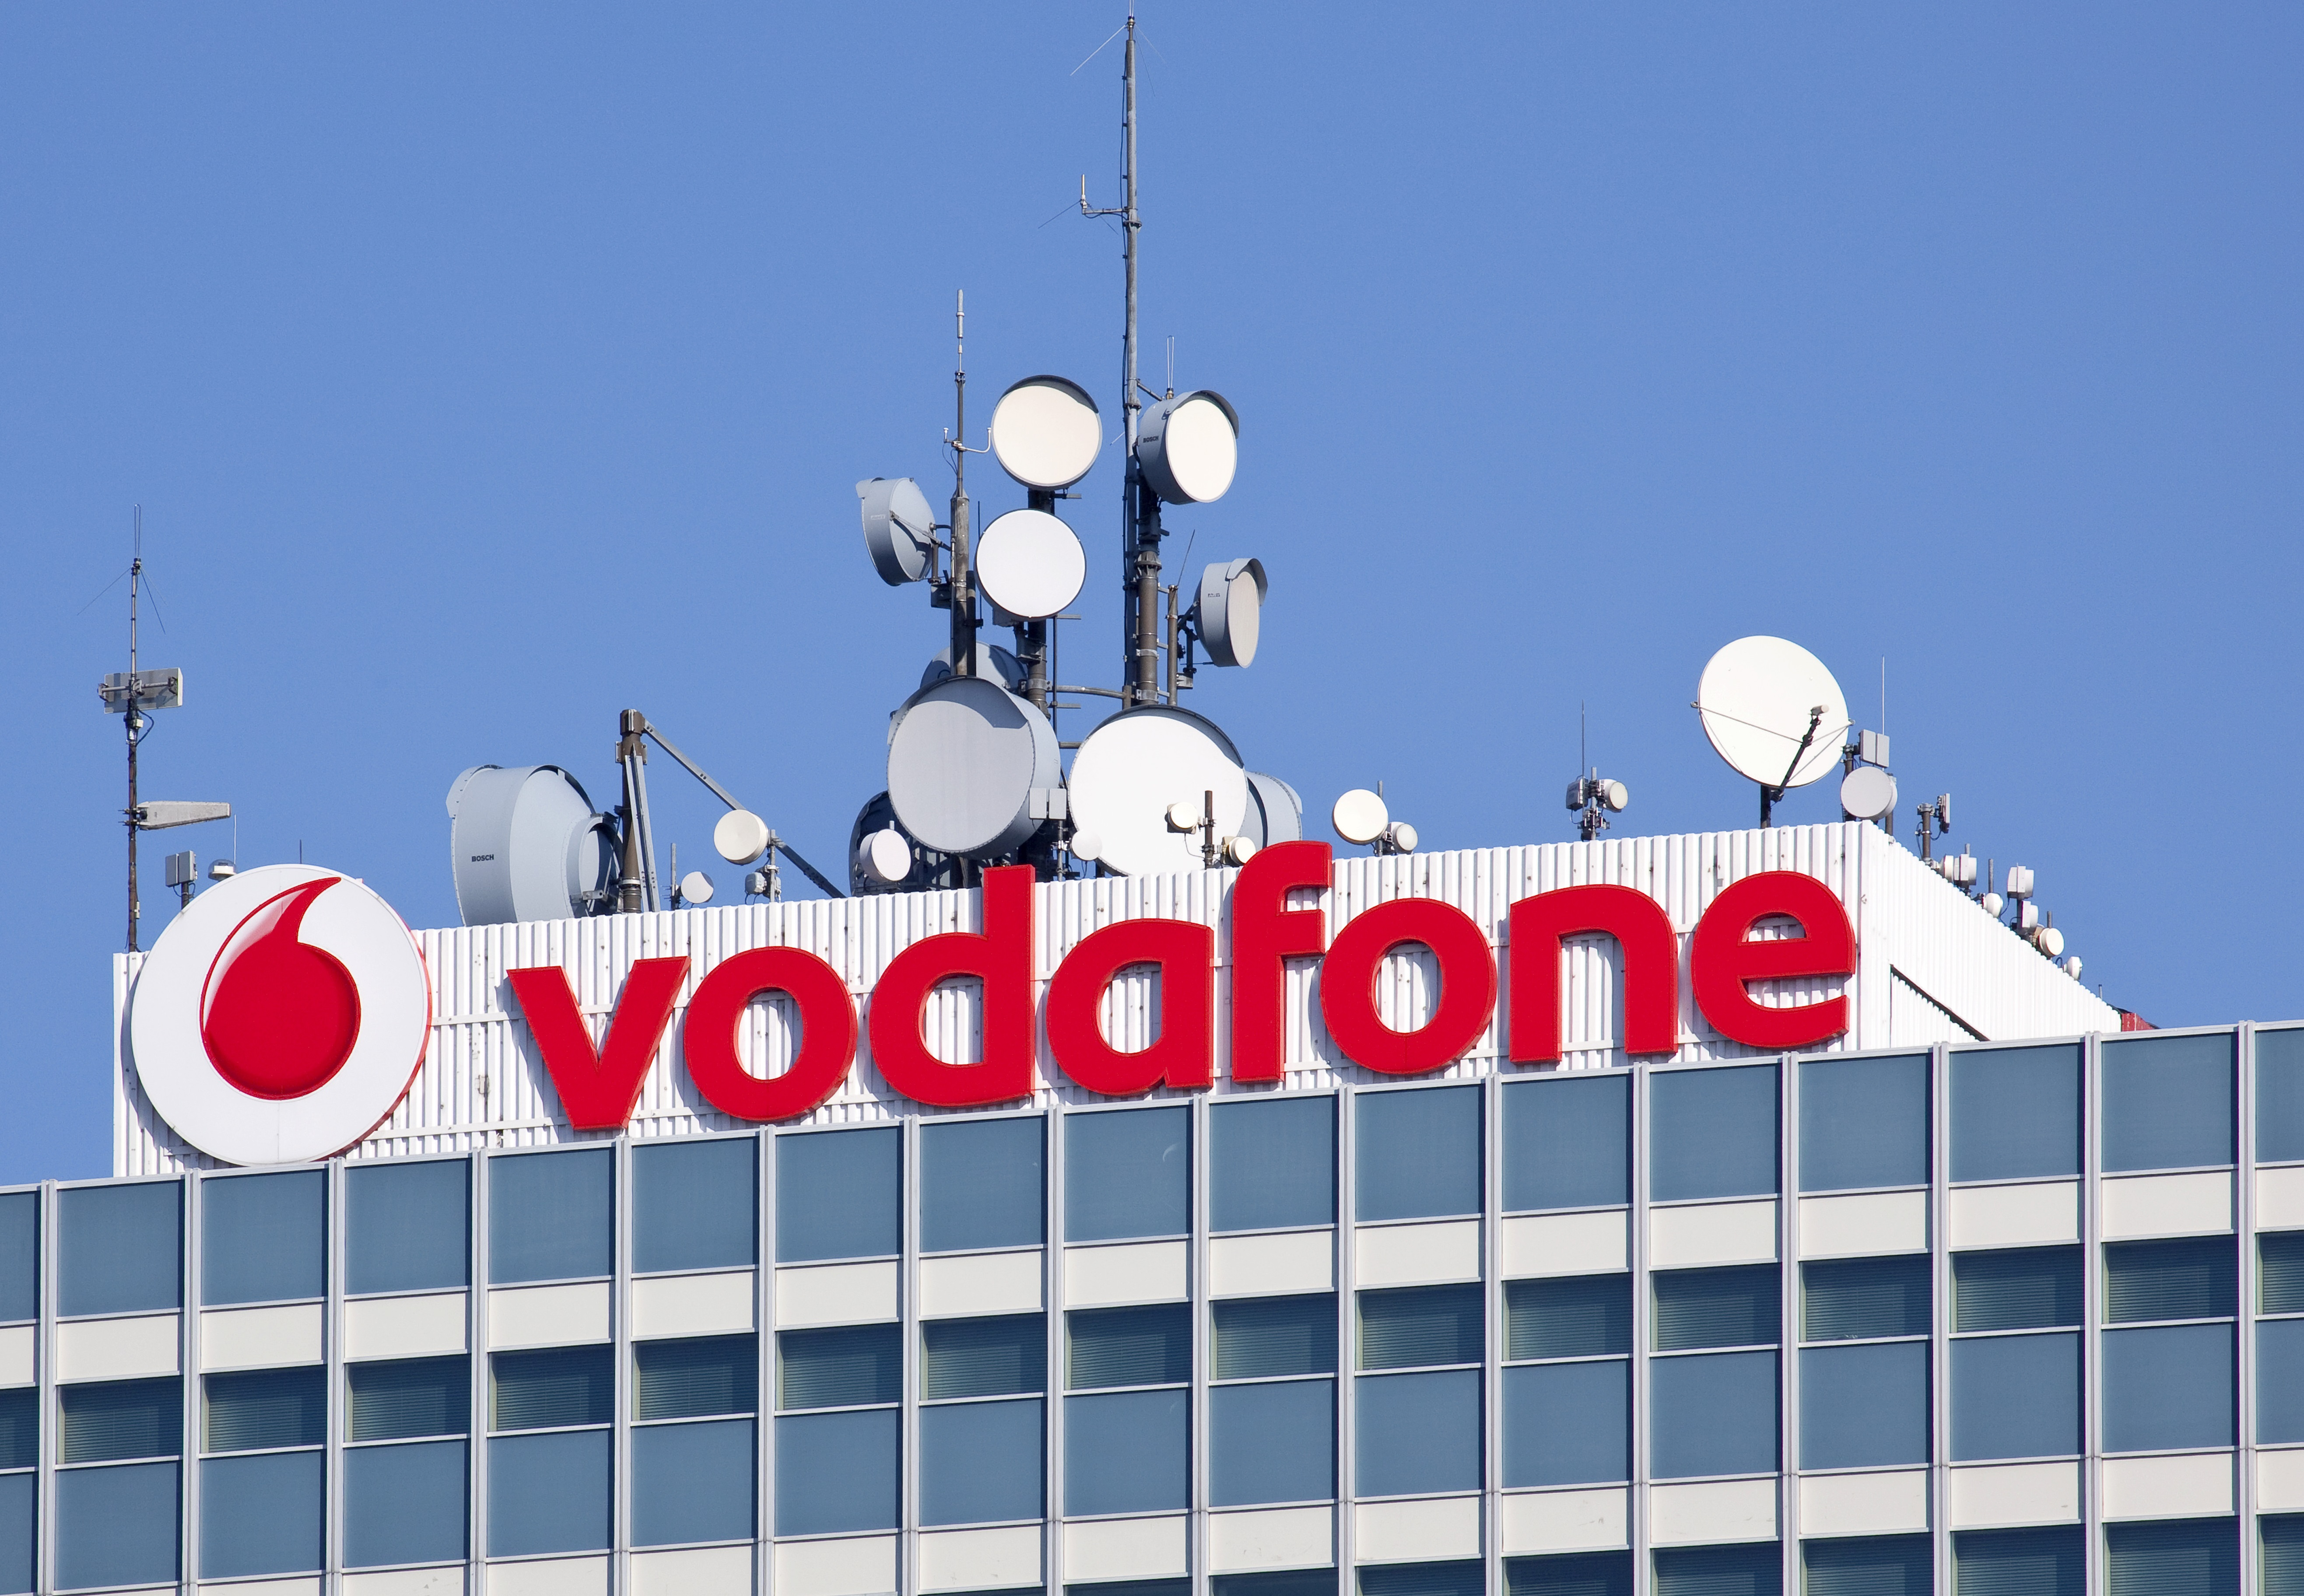 information about vodafone company Vodafone is a leading full service telecommunications company, with mobile and fixed networks here to help our customers do their thing better.